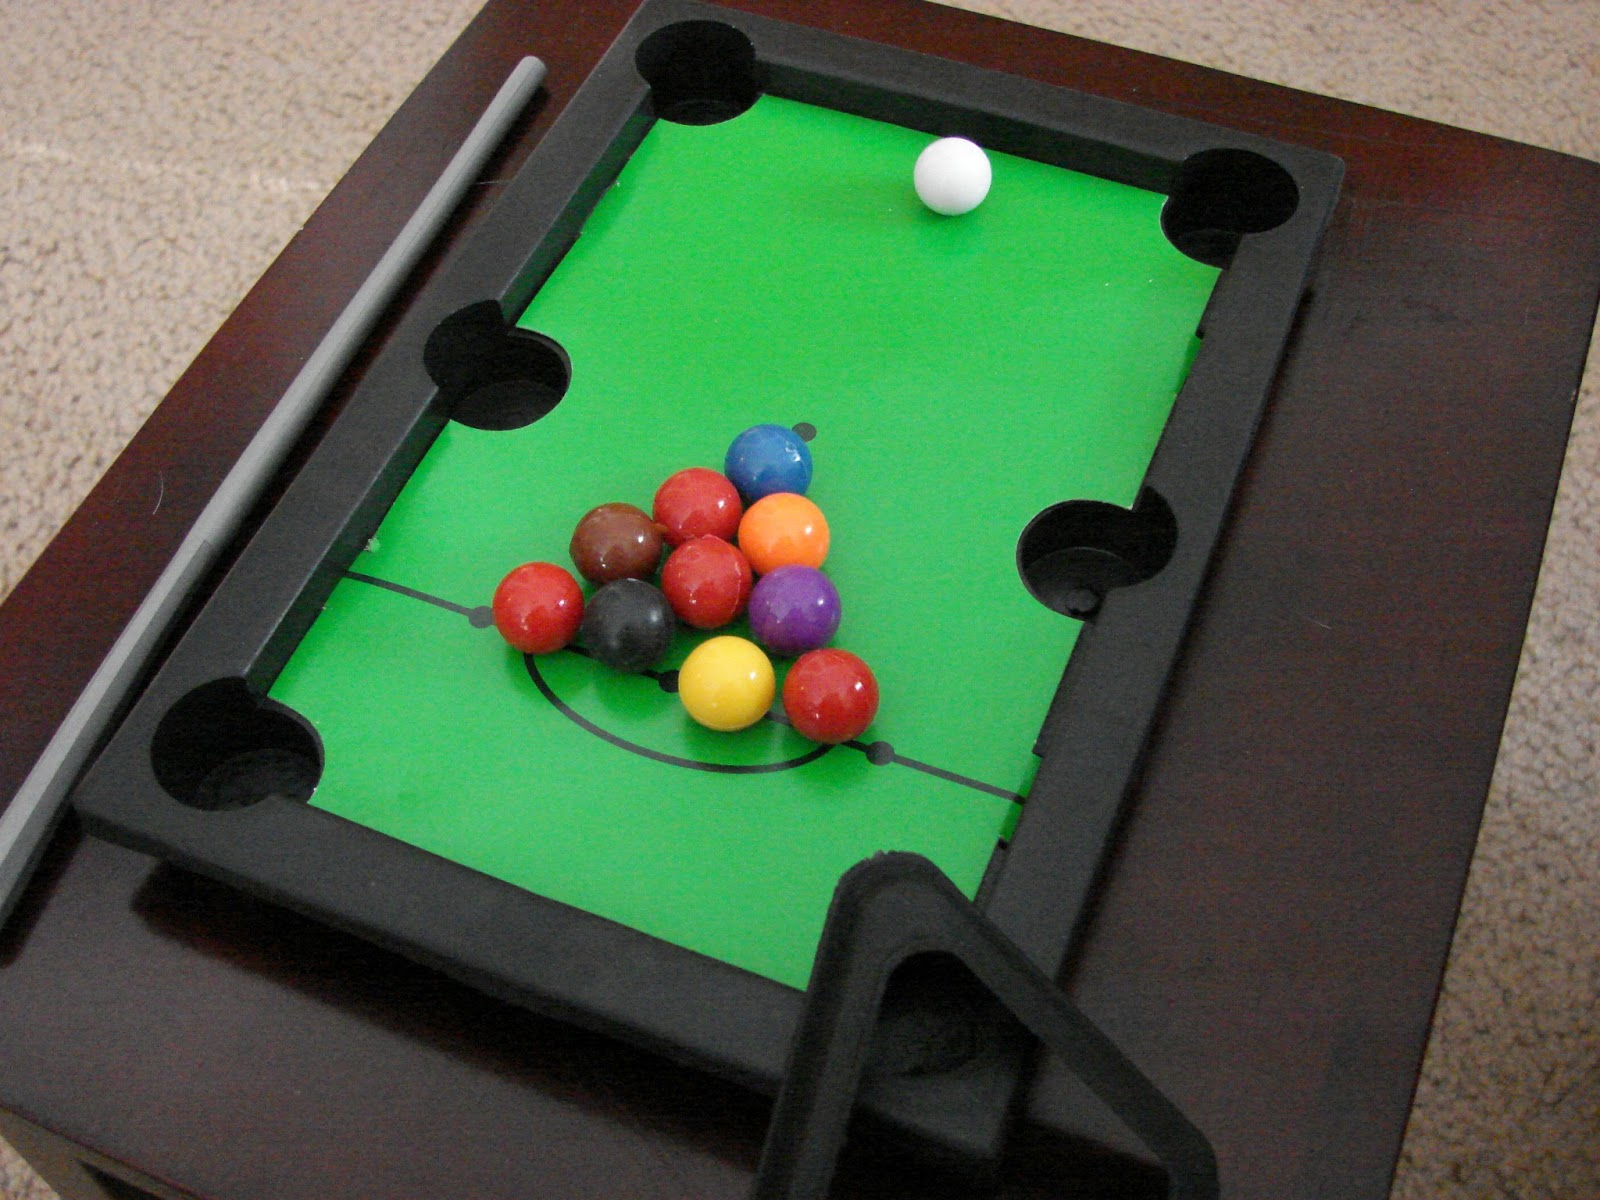 We Love The Little Triangle Thing To Rack Up The Balls...and The Two Pool  Sticks, Super Cute And They Are The Perfect Size For The Dolls!